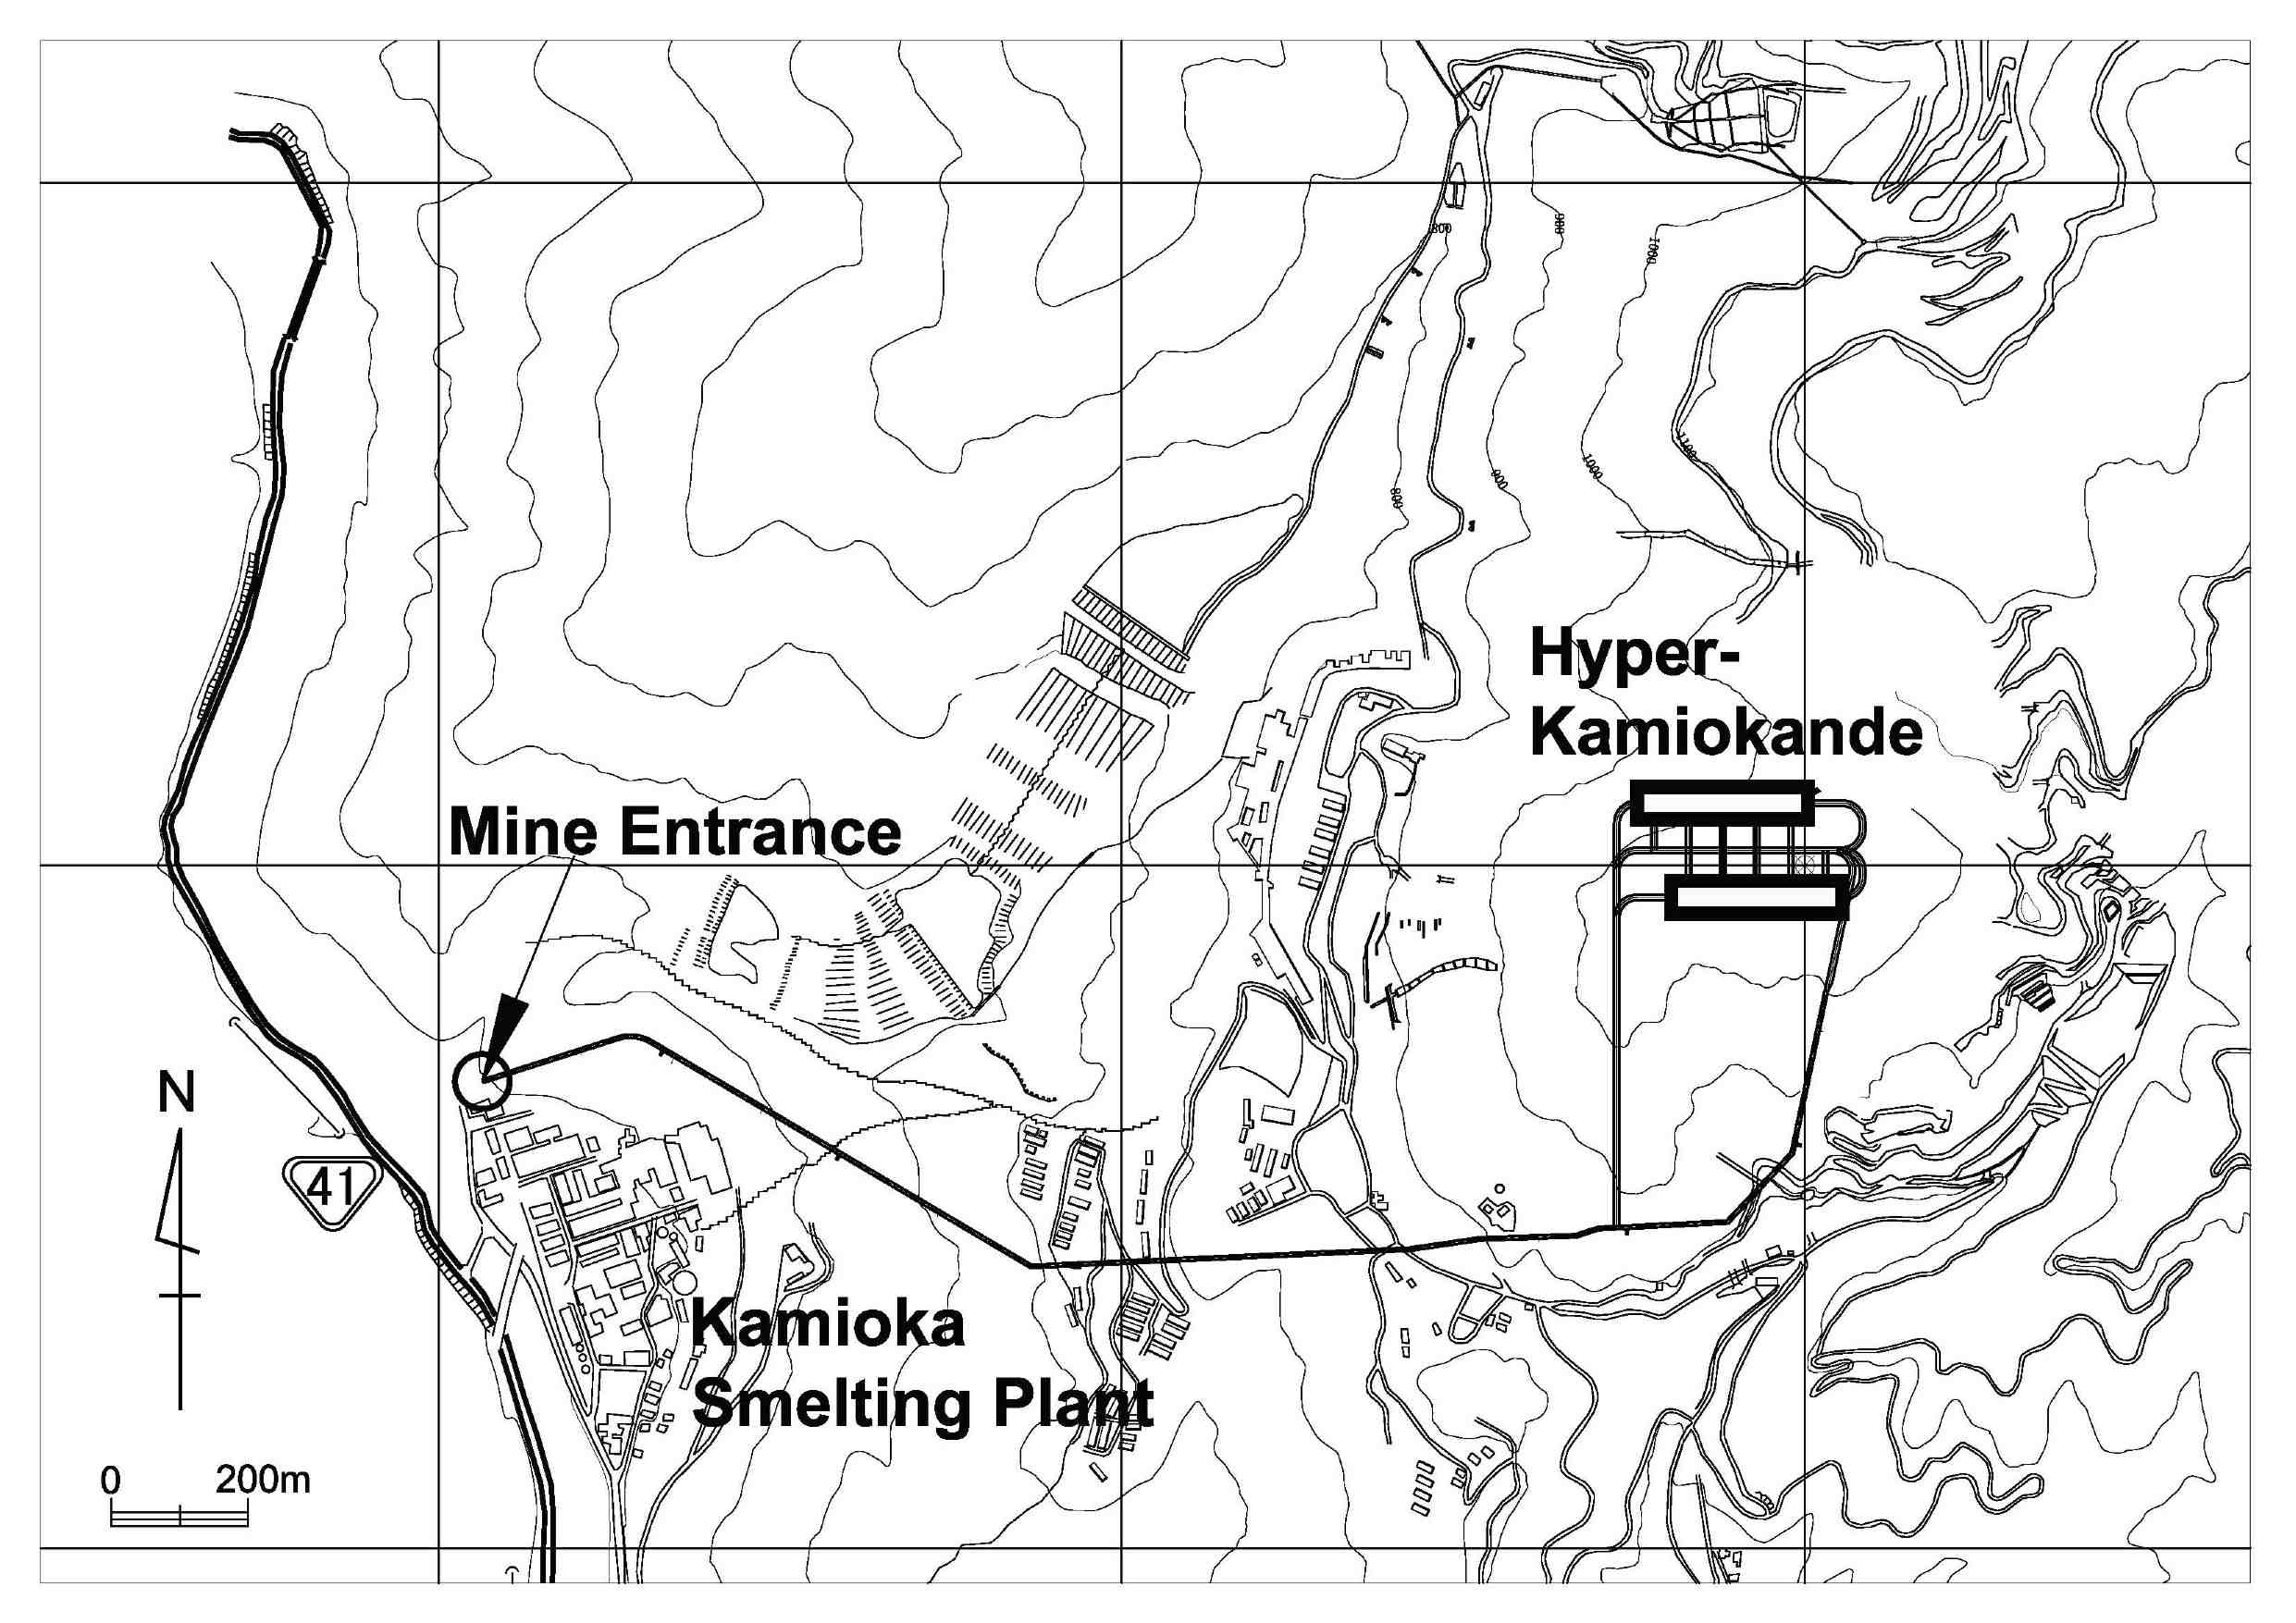 The candidate site map. The site is located 8 km south of the Super-K site as shown in the left panel. The map of the Tochibora mine is shown in the right panel.